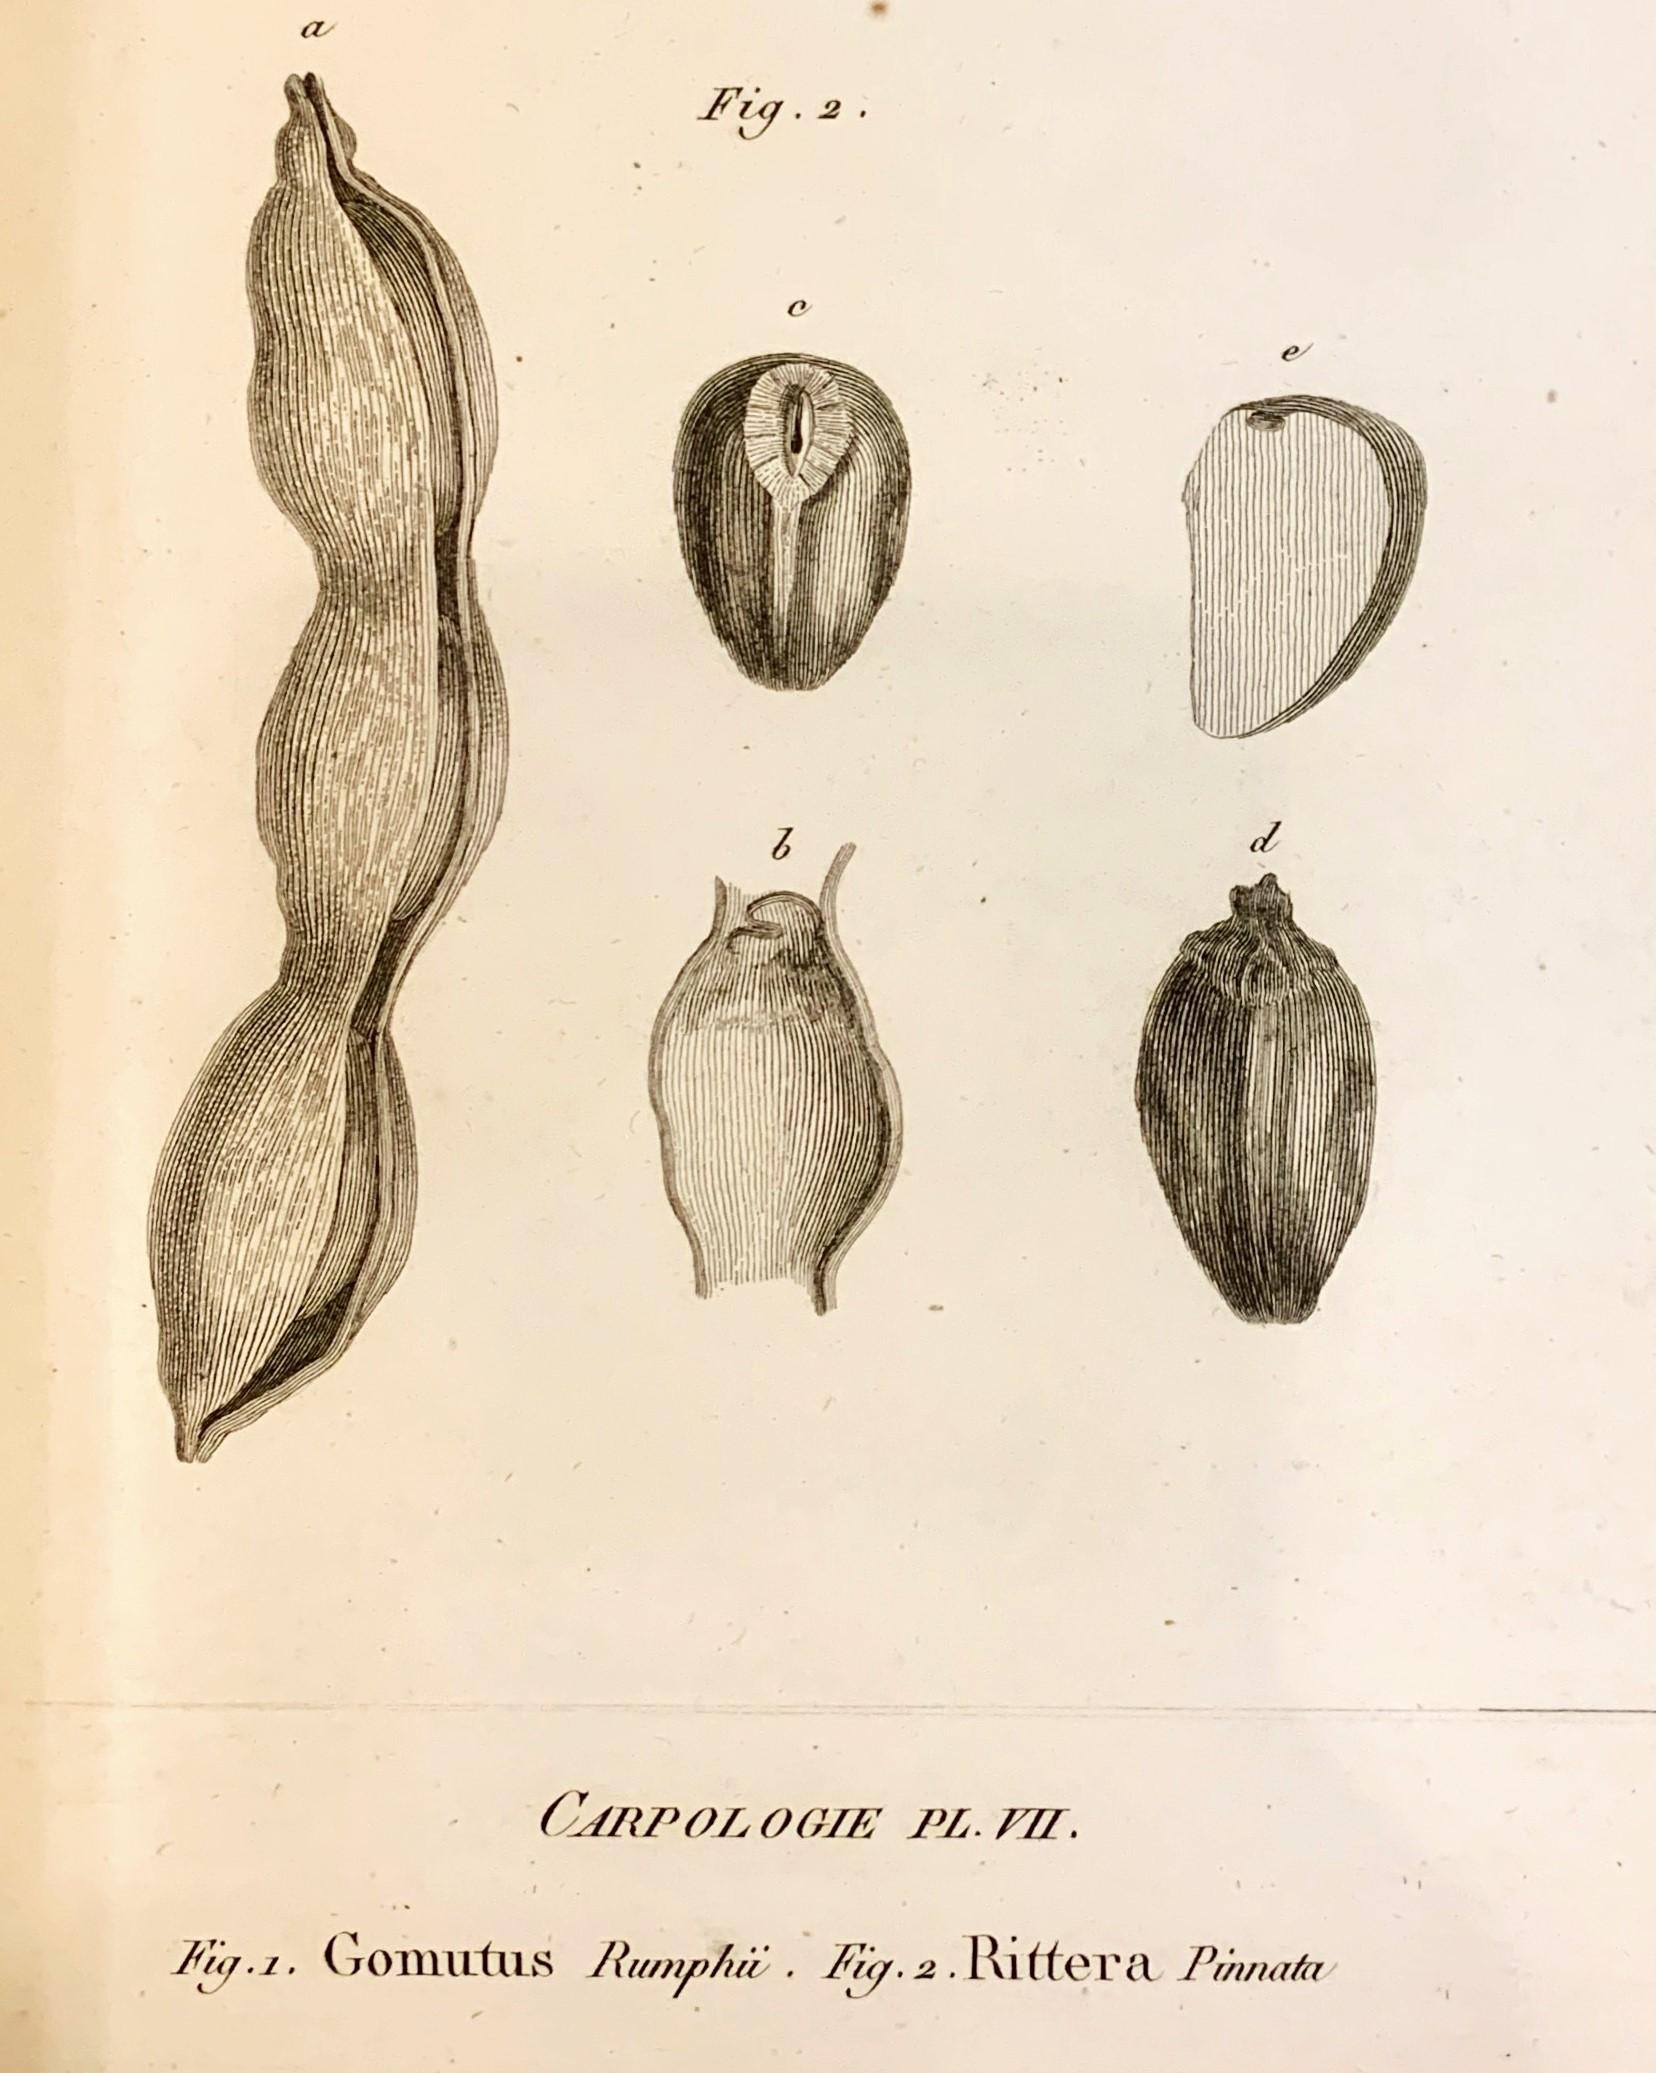 Rittera pinnata, Plate 7, José Francisco Correia da Serra, Vues carpologiques, [Paris : Museum d'histoire naturelle, 1807], American Philosophical Society Library & Museum, Pamphlets on botany, 580 Pam. v.5, no.3.